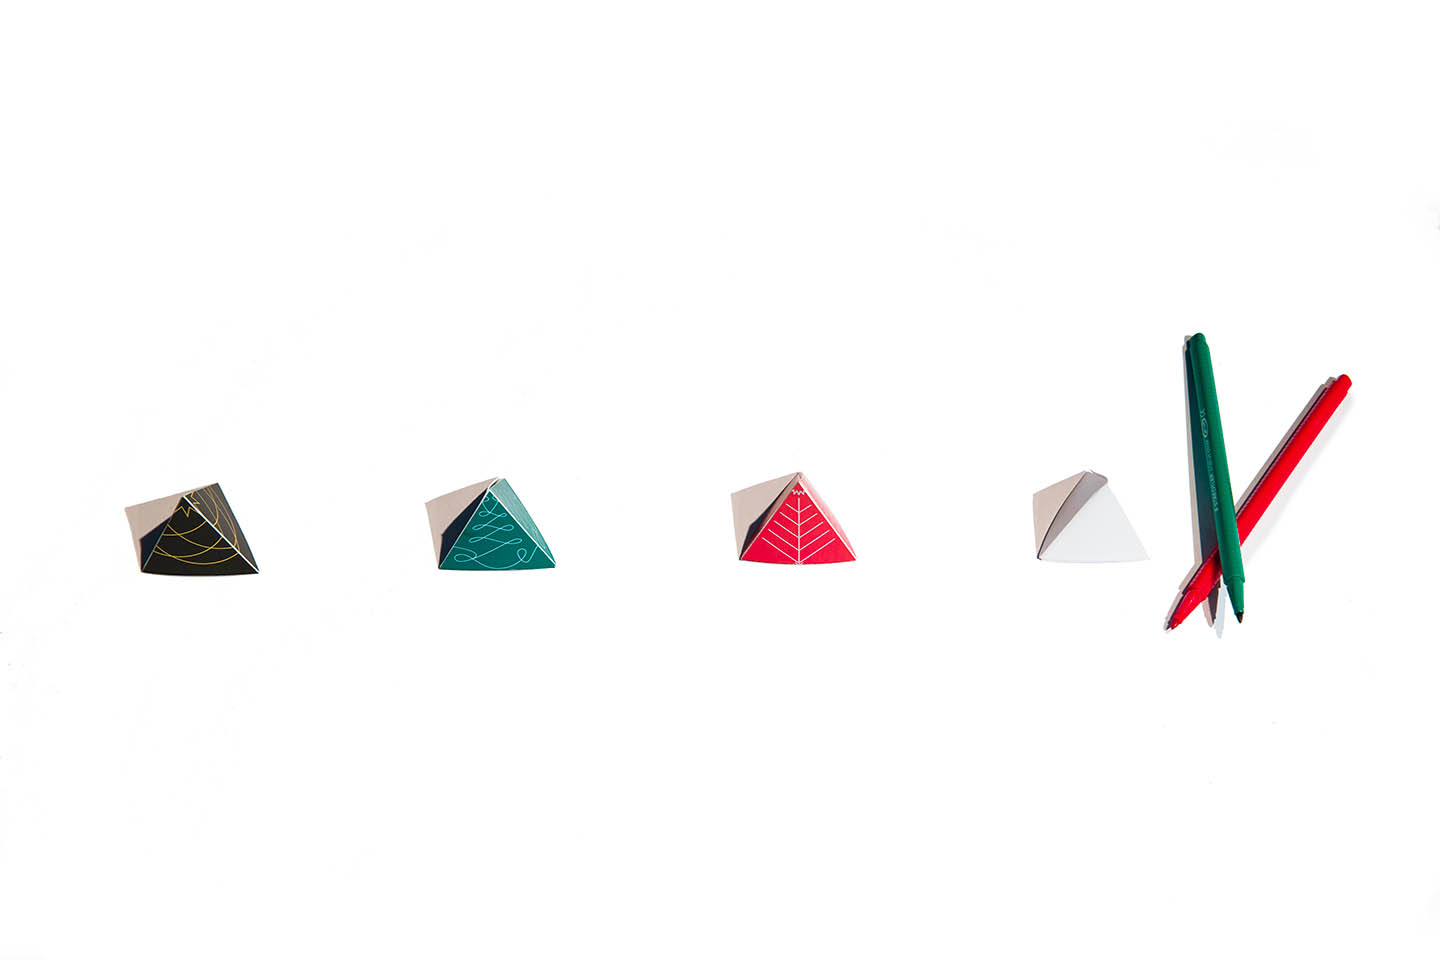 Black, green, red, and white 3D folded trees next to red and green markers on a white surface